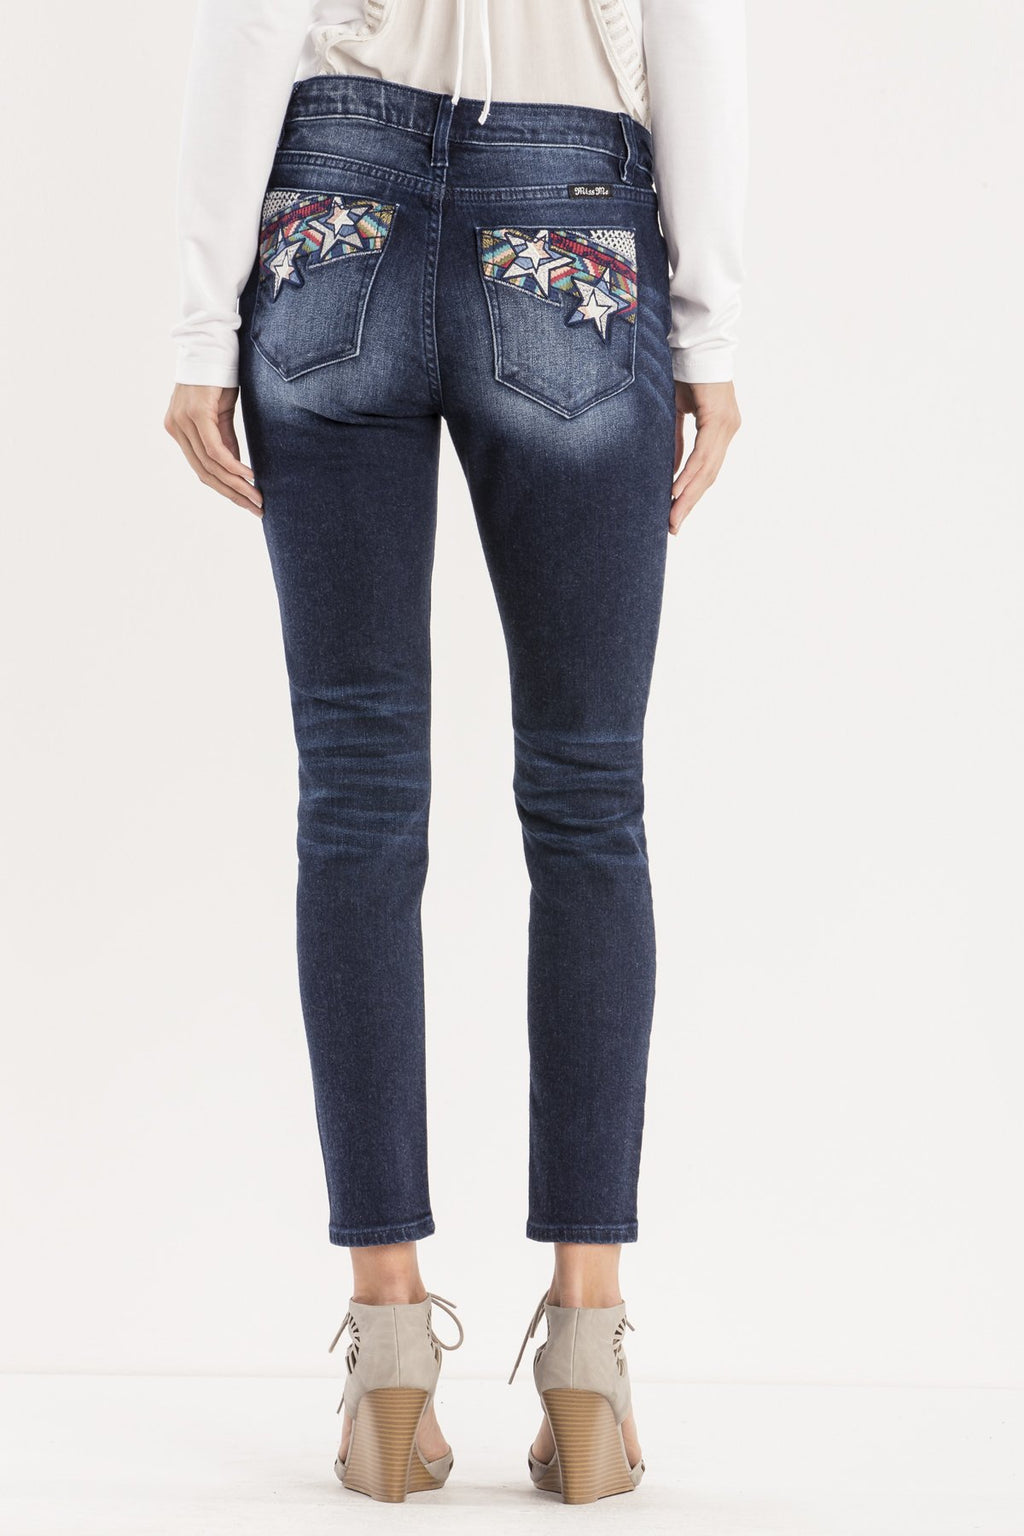 SHOOTING STARS MID-RISE ANKLE SKINNY JEANS